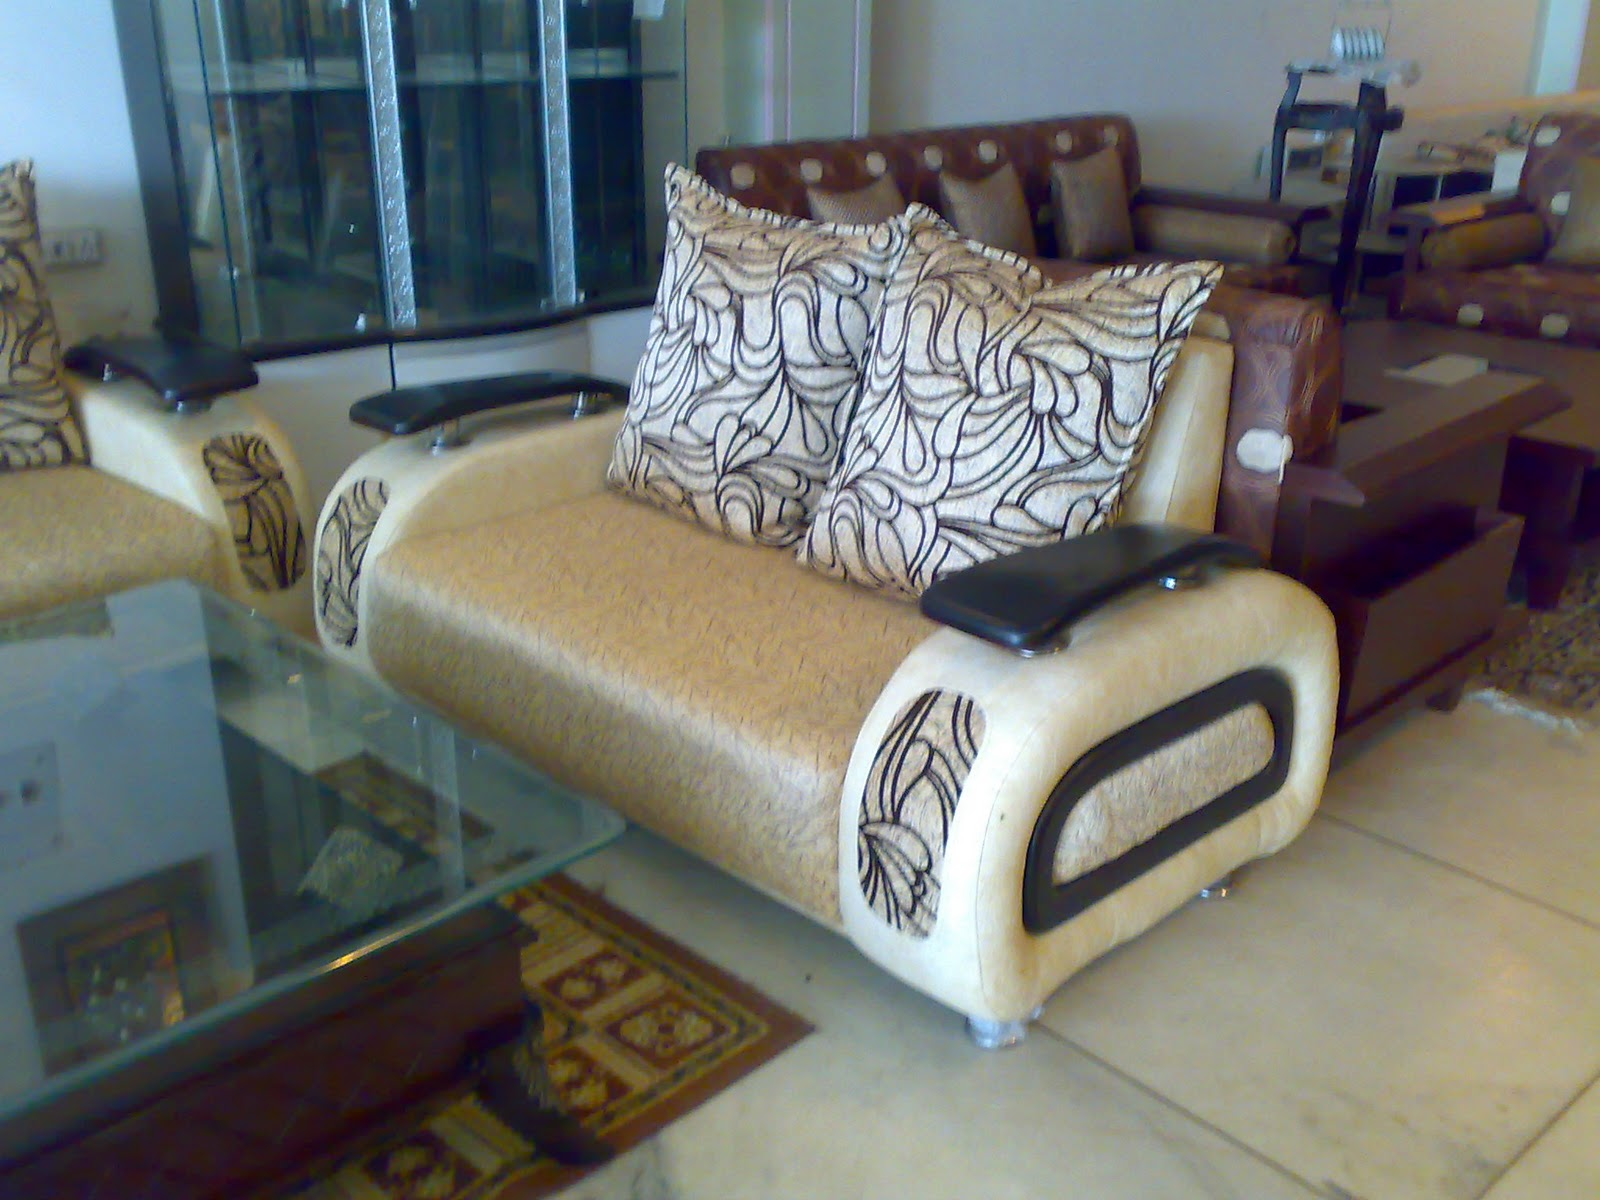 designer sofa sets with prices in delhi caruso leather 2 piece power motion sectional latest furniture designs buy all kind of wooden